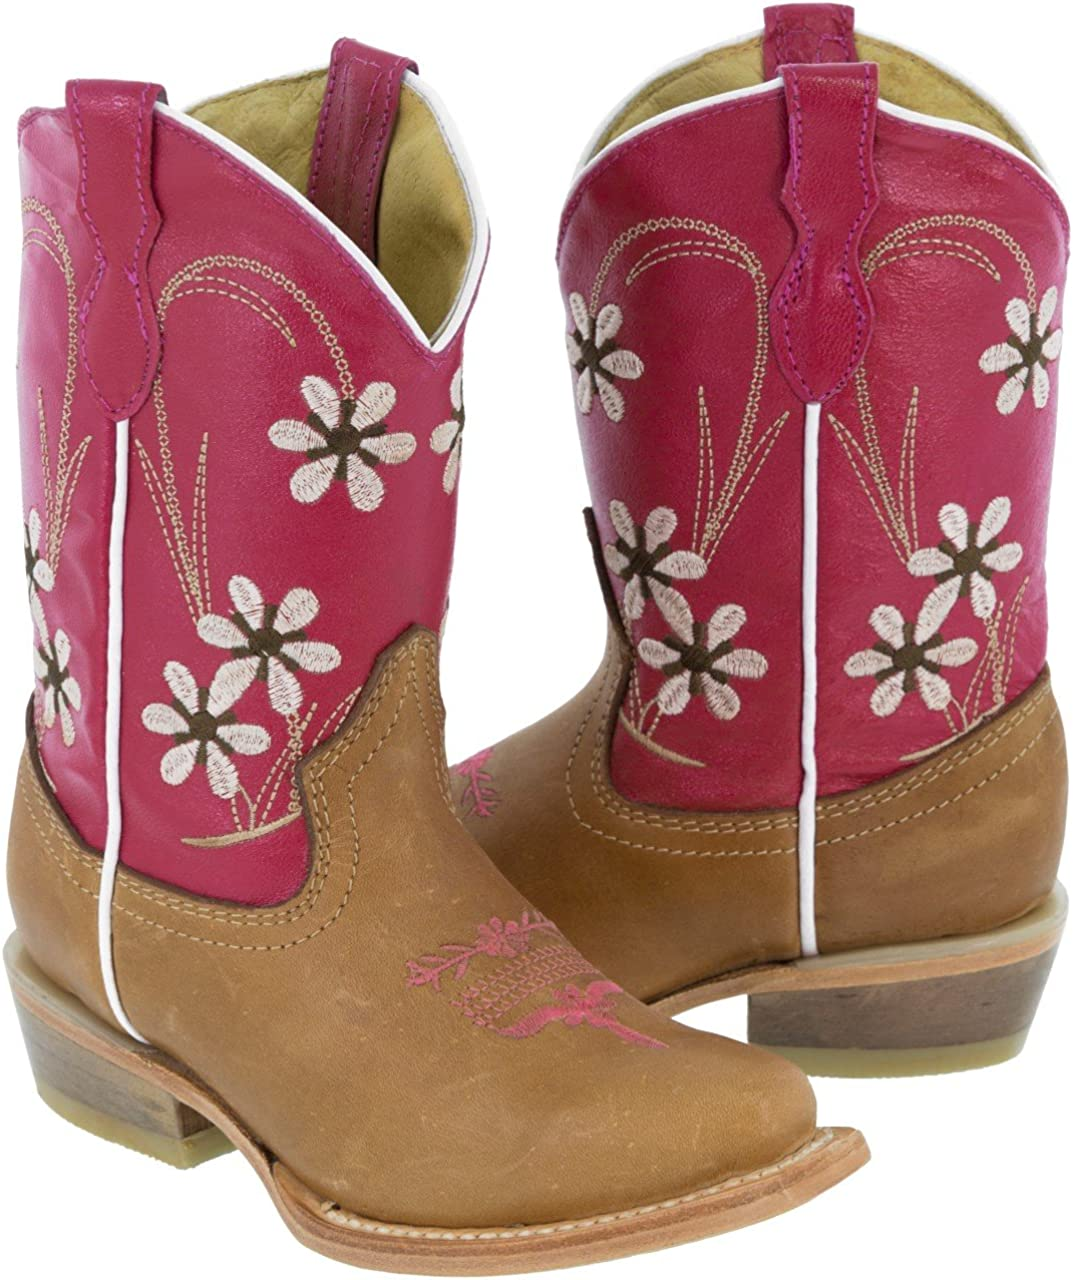 Veretta Boots Girls Kids Fuchsia Light Brown Youth Floral Cowgirl Boots Snip